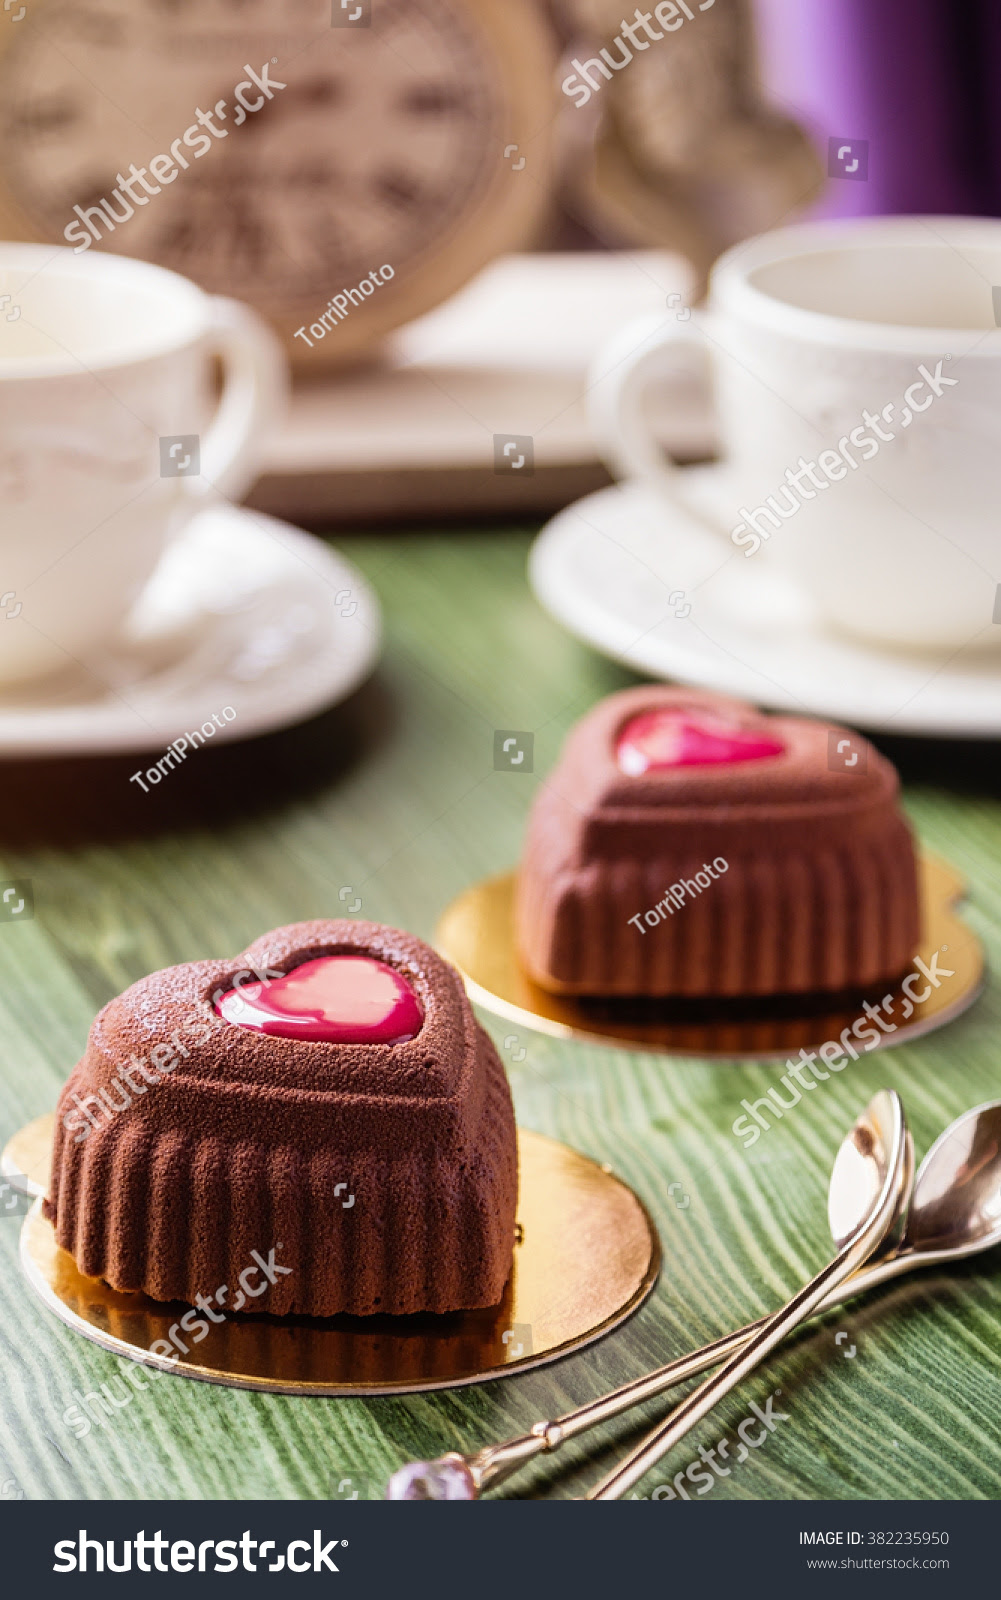 http://www.shutterstock.com/en/pic-382235950/stock-photo-heart-shaped-mini-mousse-cakes-covered-with-chocolate-velour-with-cup-of-coffee-on-green-table-in.html